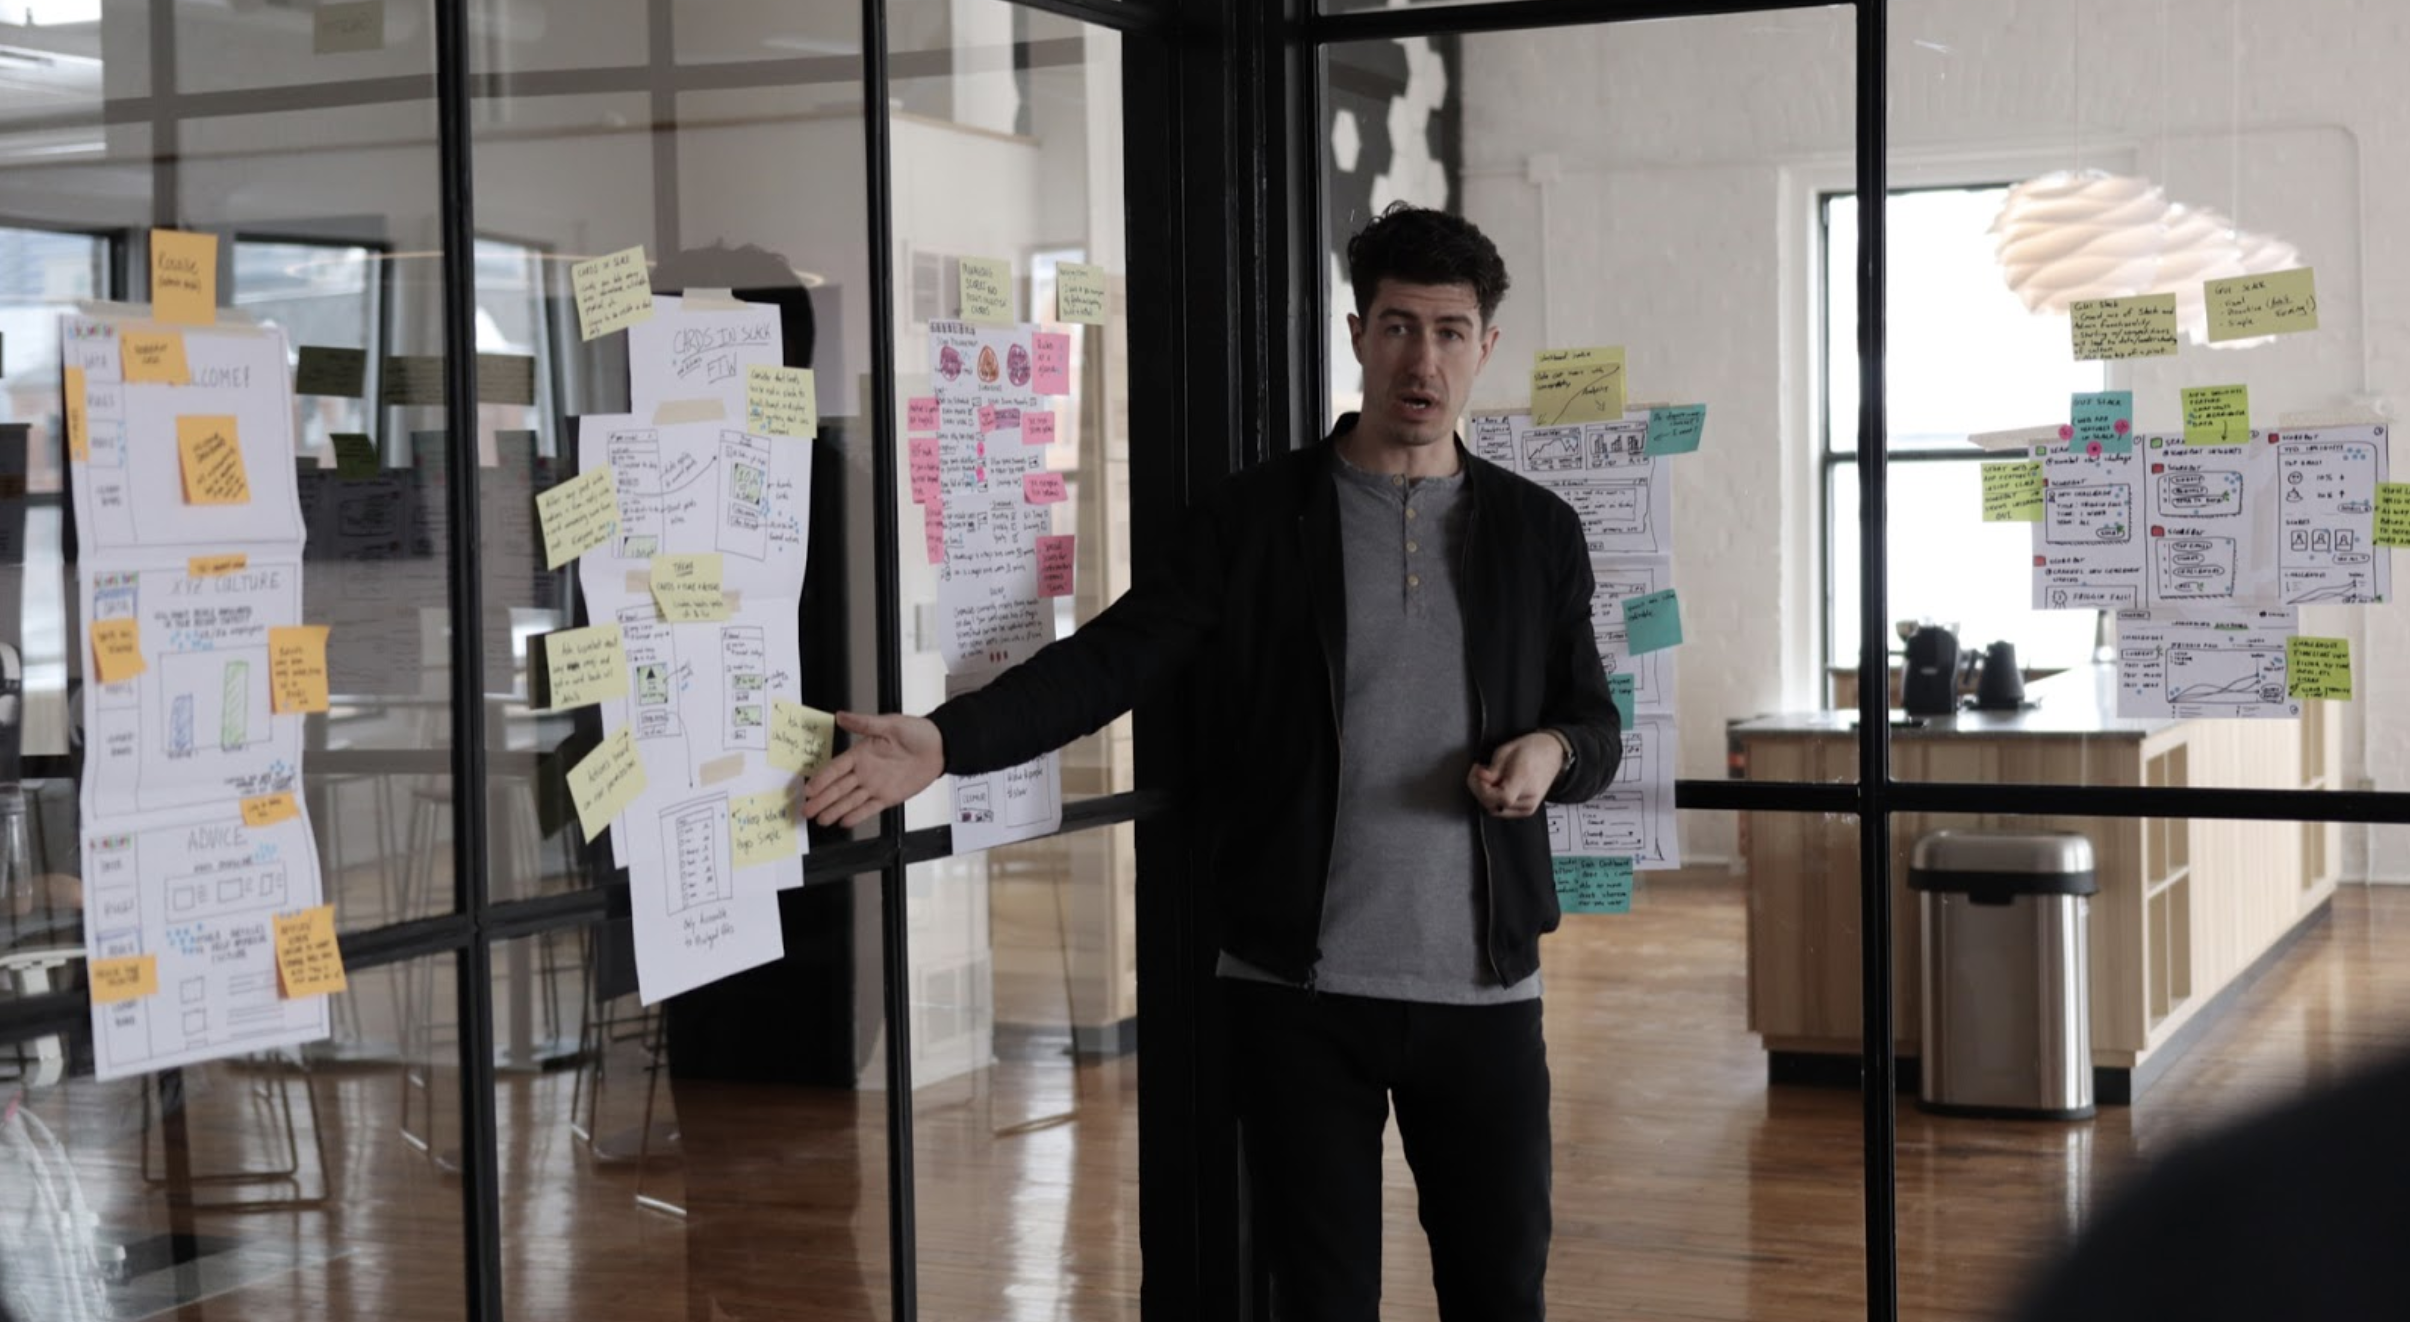 man putting sticky notes up on wall for design sprint